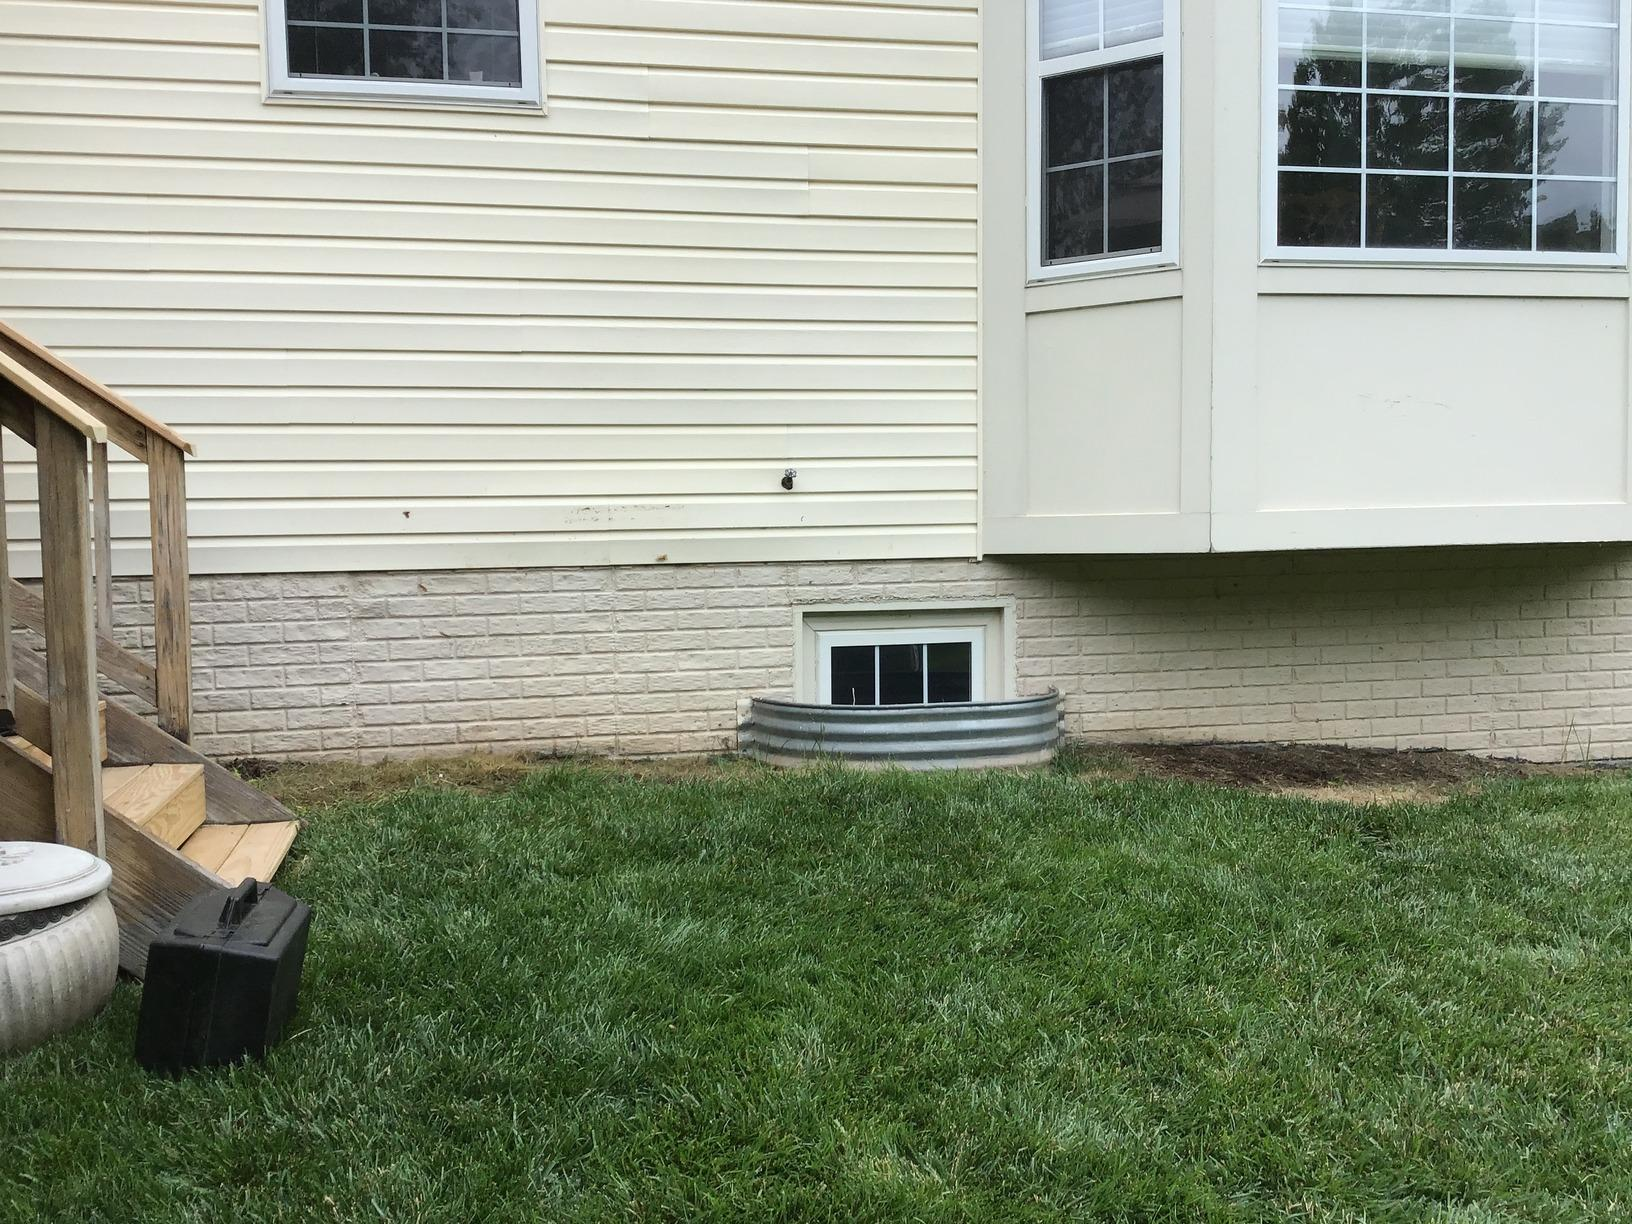 Backyard Clean Out in Gainesville, VA - After Photo